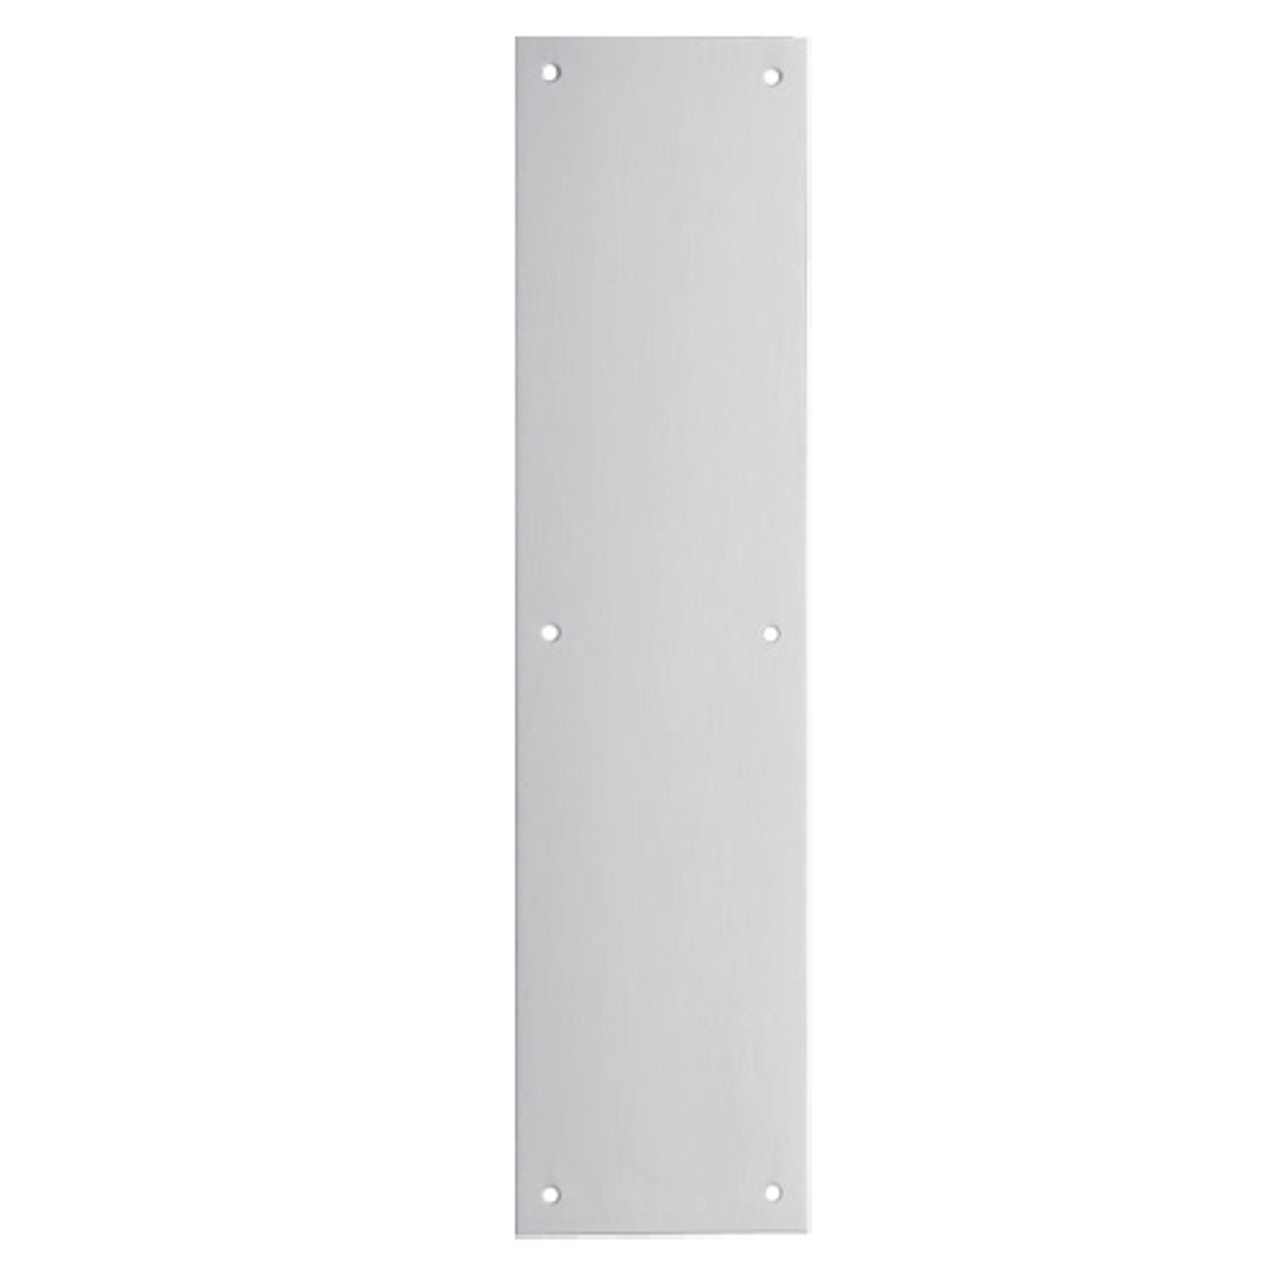 8200-US26D-6x16 IVES Architectural Door Trim 6x16 Inch Push Plate in Satin Chrome